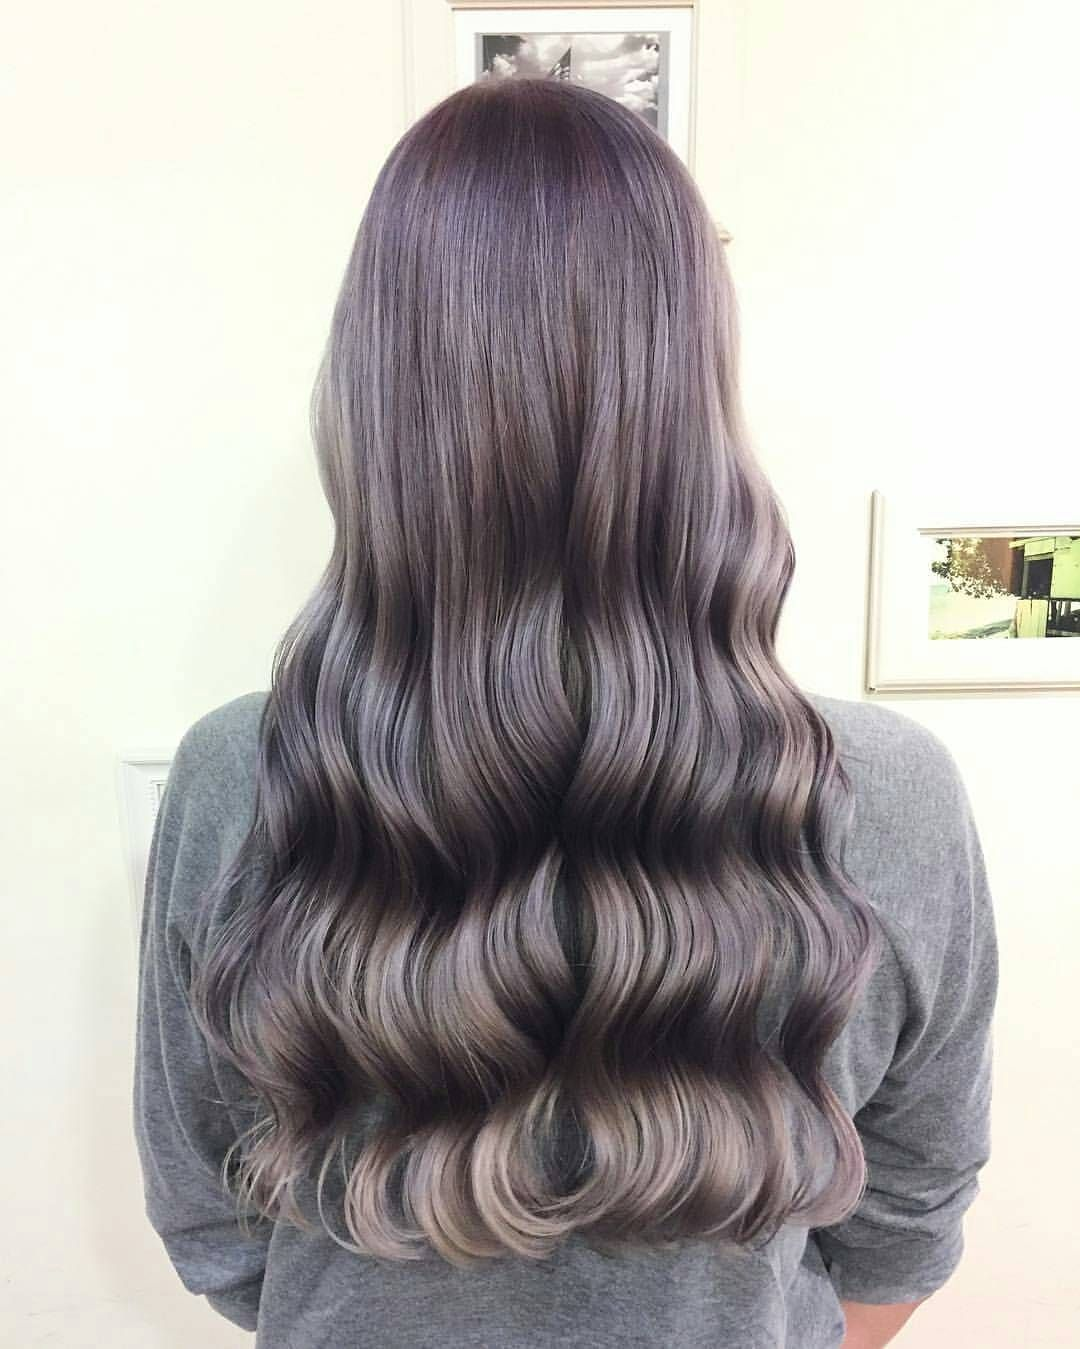 Can you guess how many colors are there in this hair style? A color gradient mixture of fairtytale purple, silver and grey hues by Hair Salon NALU, Tokyo.